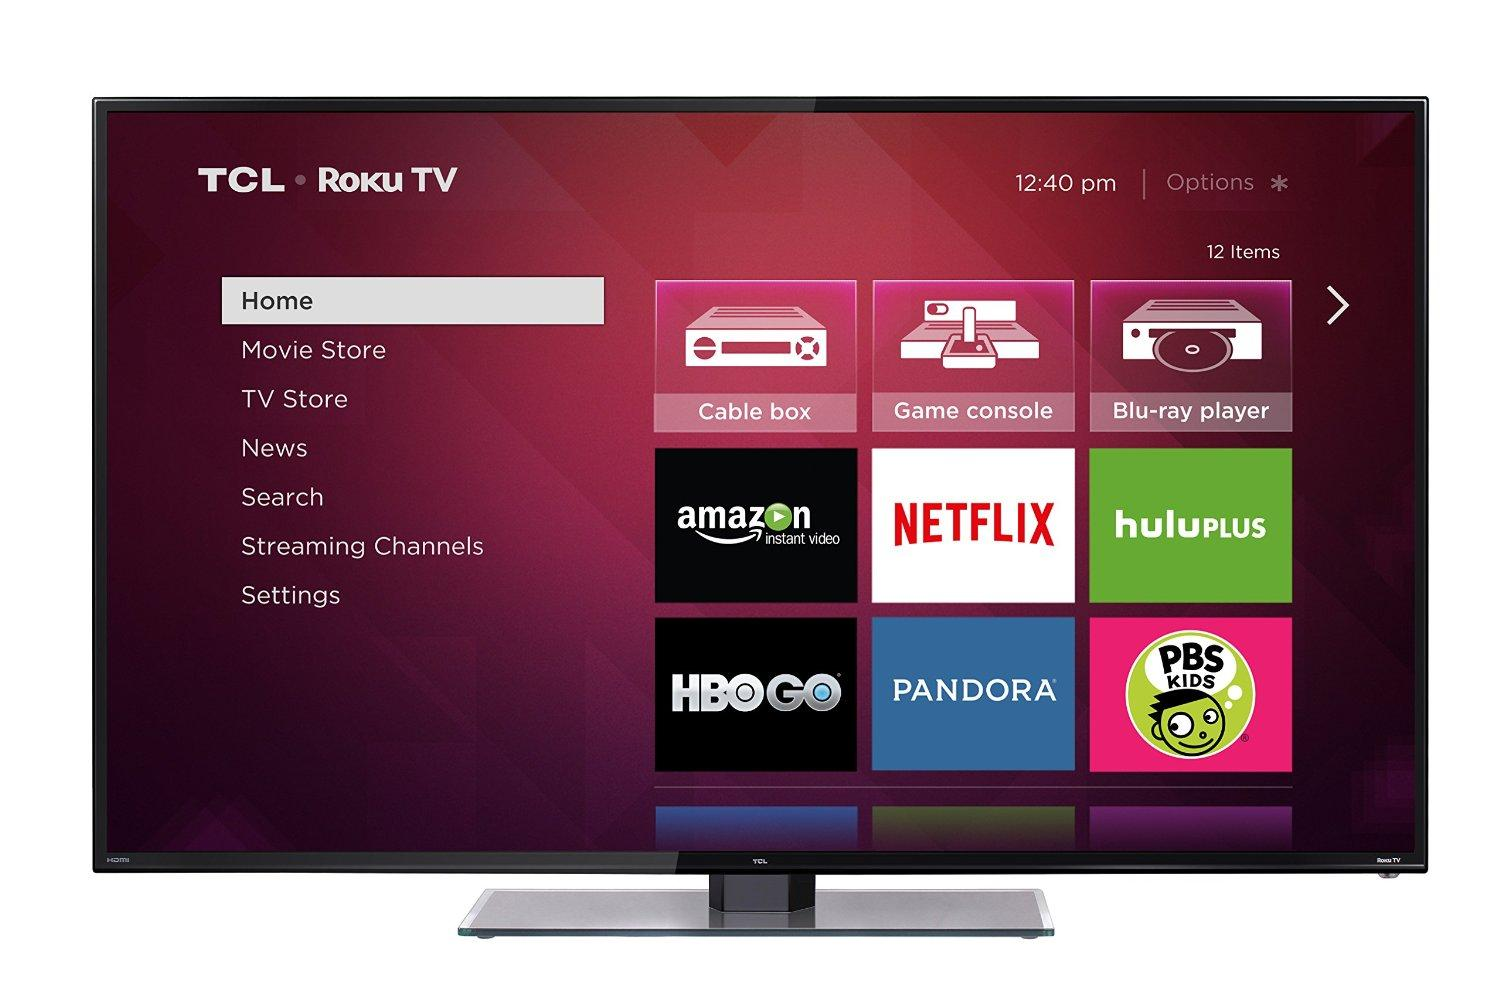 TCL 48-Inch 1080p Smart LED TV(Roku TV) 48FS3700